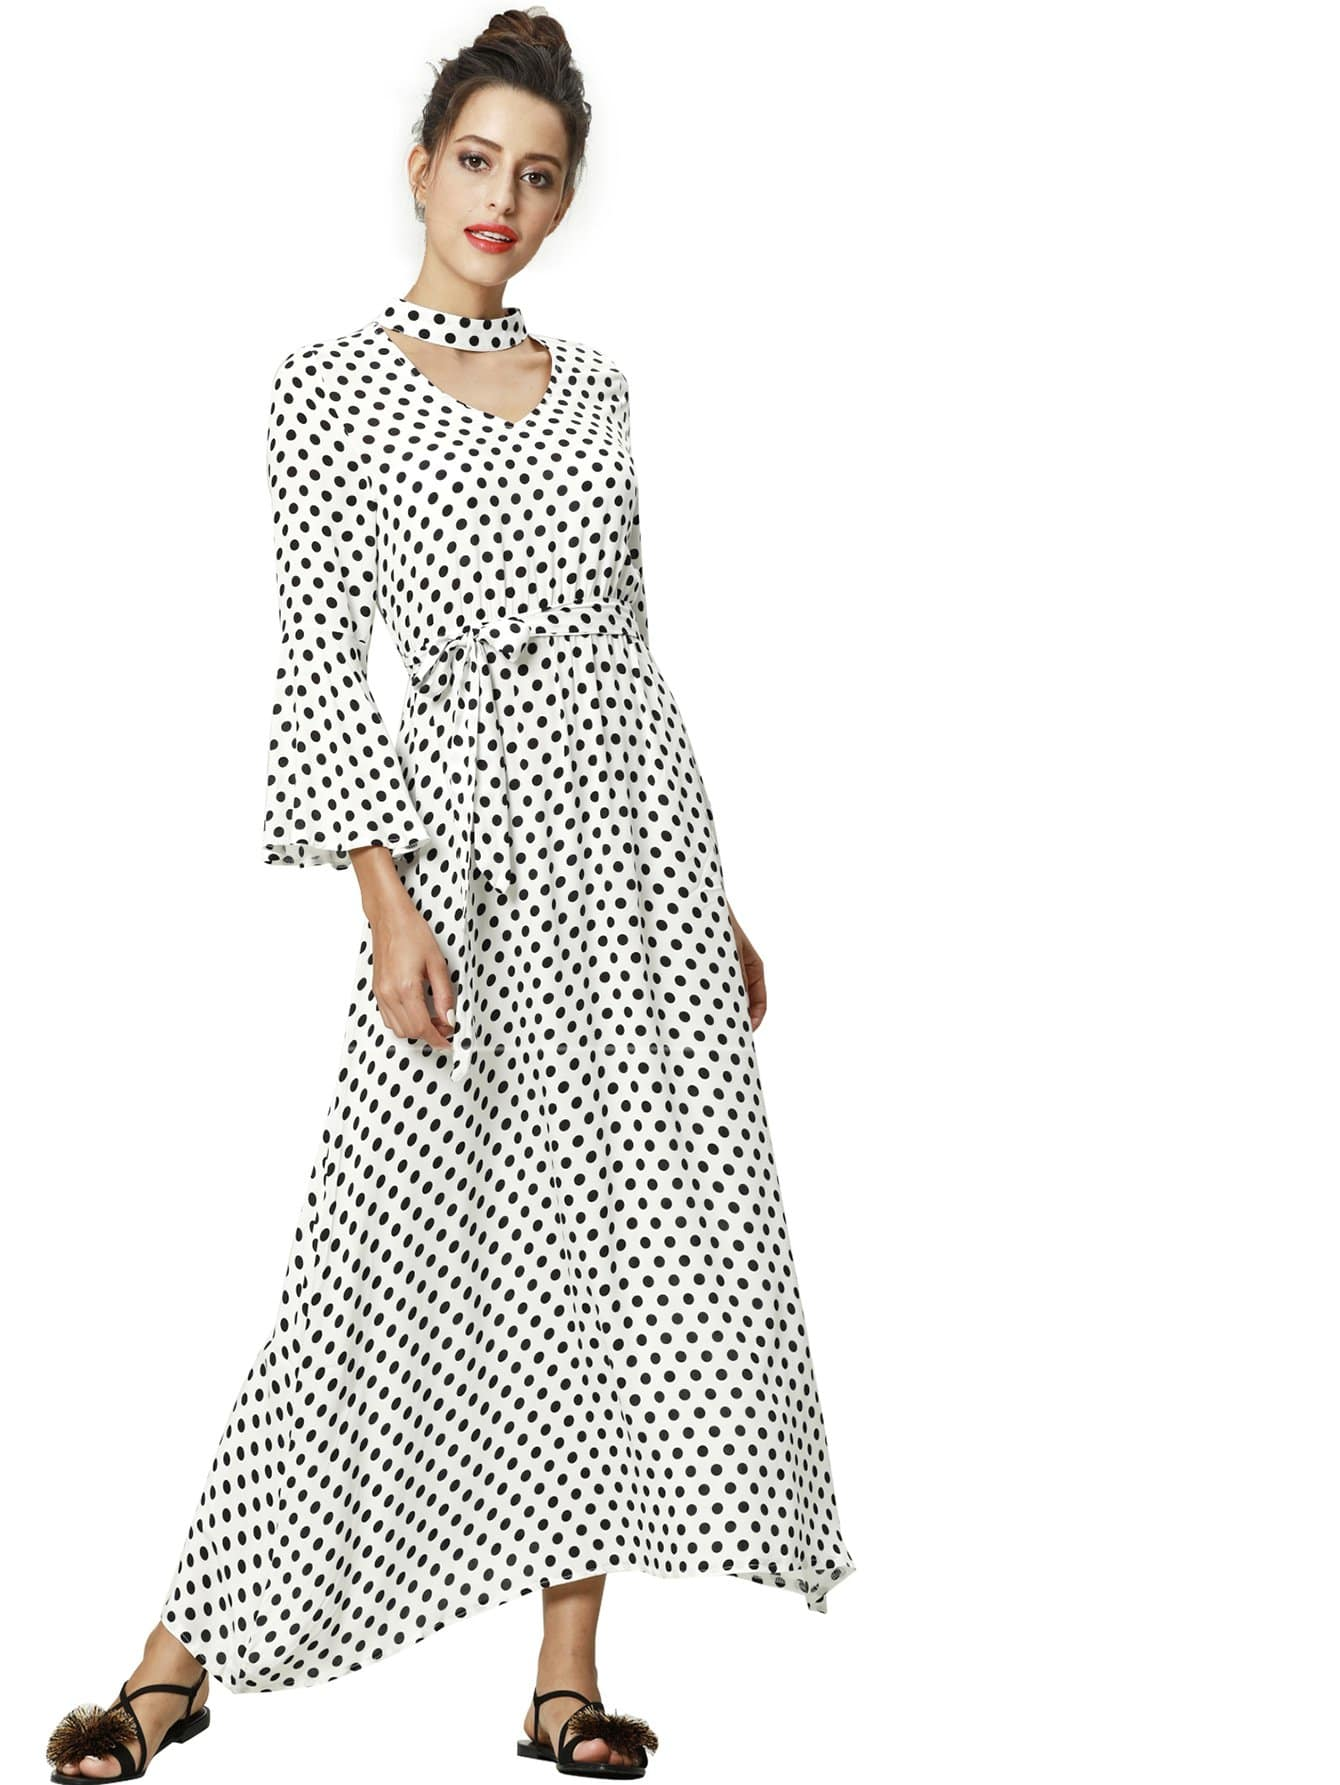 d13b26626e Polka Dot Tie Waist Bell Sleeve Dress Emmacloth Women Fast Fashion Online